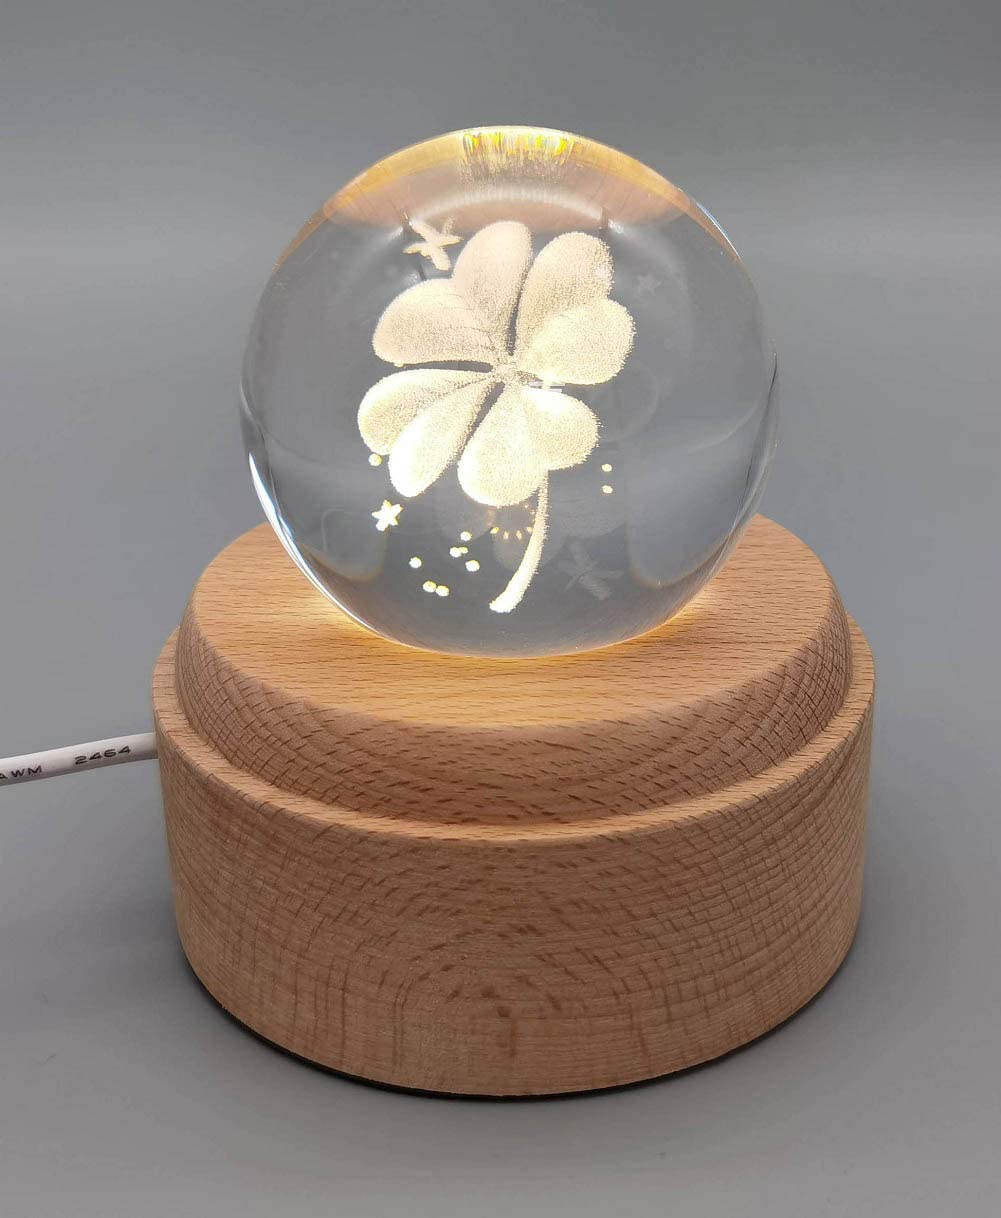 3D Laser Etched Crystal Ball Night Light(70mm),Projection Ball Night Lamp,LED Light On Wooden Base, Best Gift for Birthday and Christmas (Four-Leaf Clover)